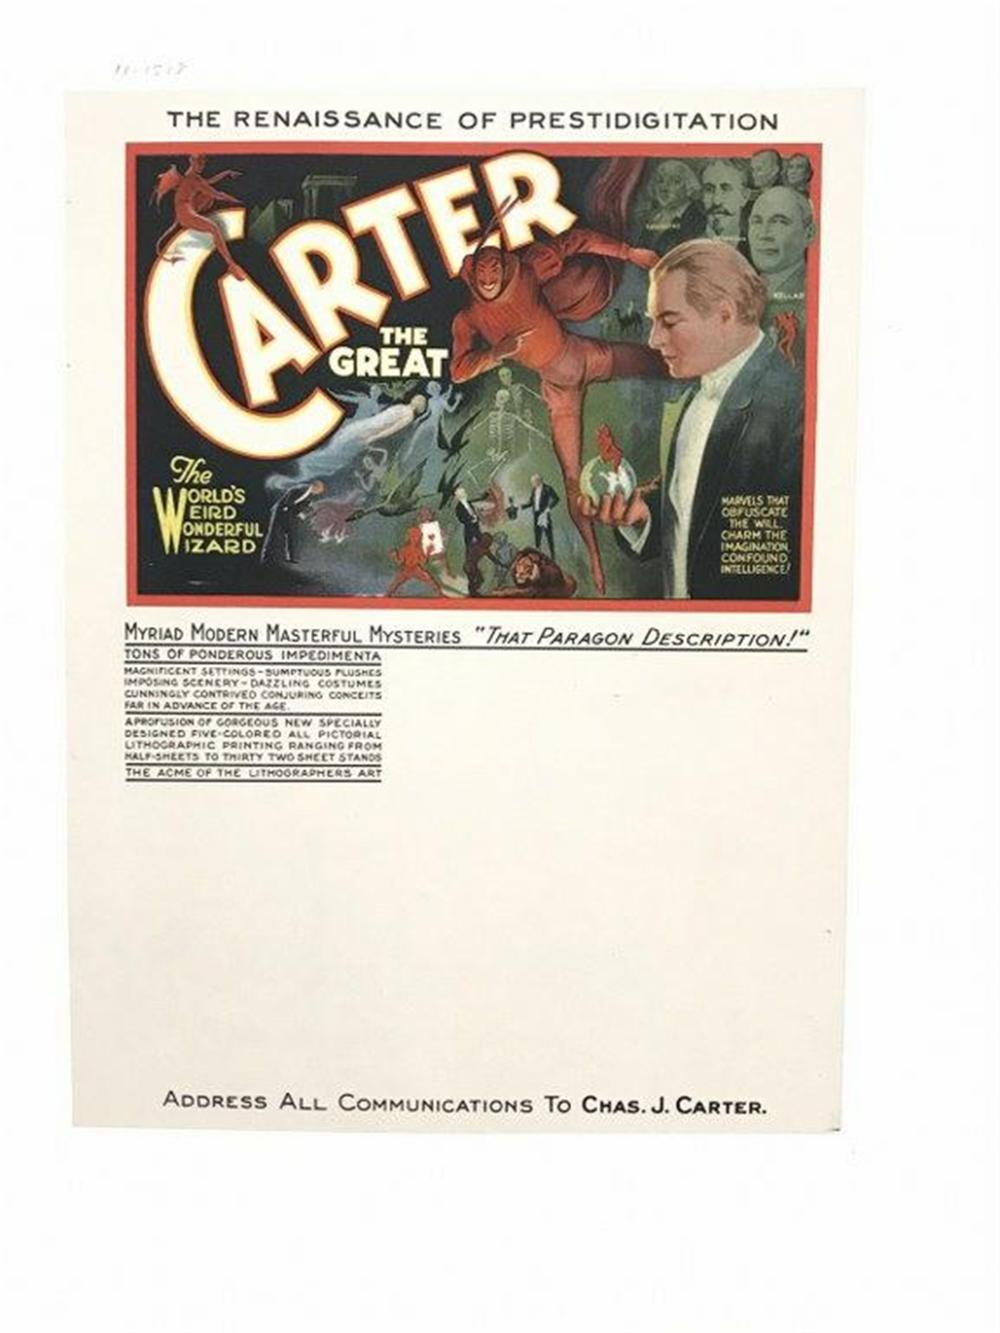 "CARTER THE GREAT MAGICIAN SMALL POSTER BROADSIDE, LINEN BACKED, CIRCAA 1920'S, MEASURES 11"" X 8 1/2"", VERY NICE CONDITION."